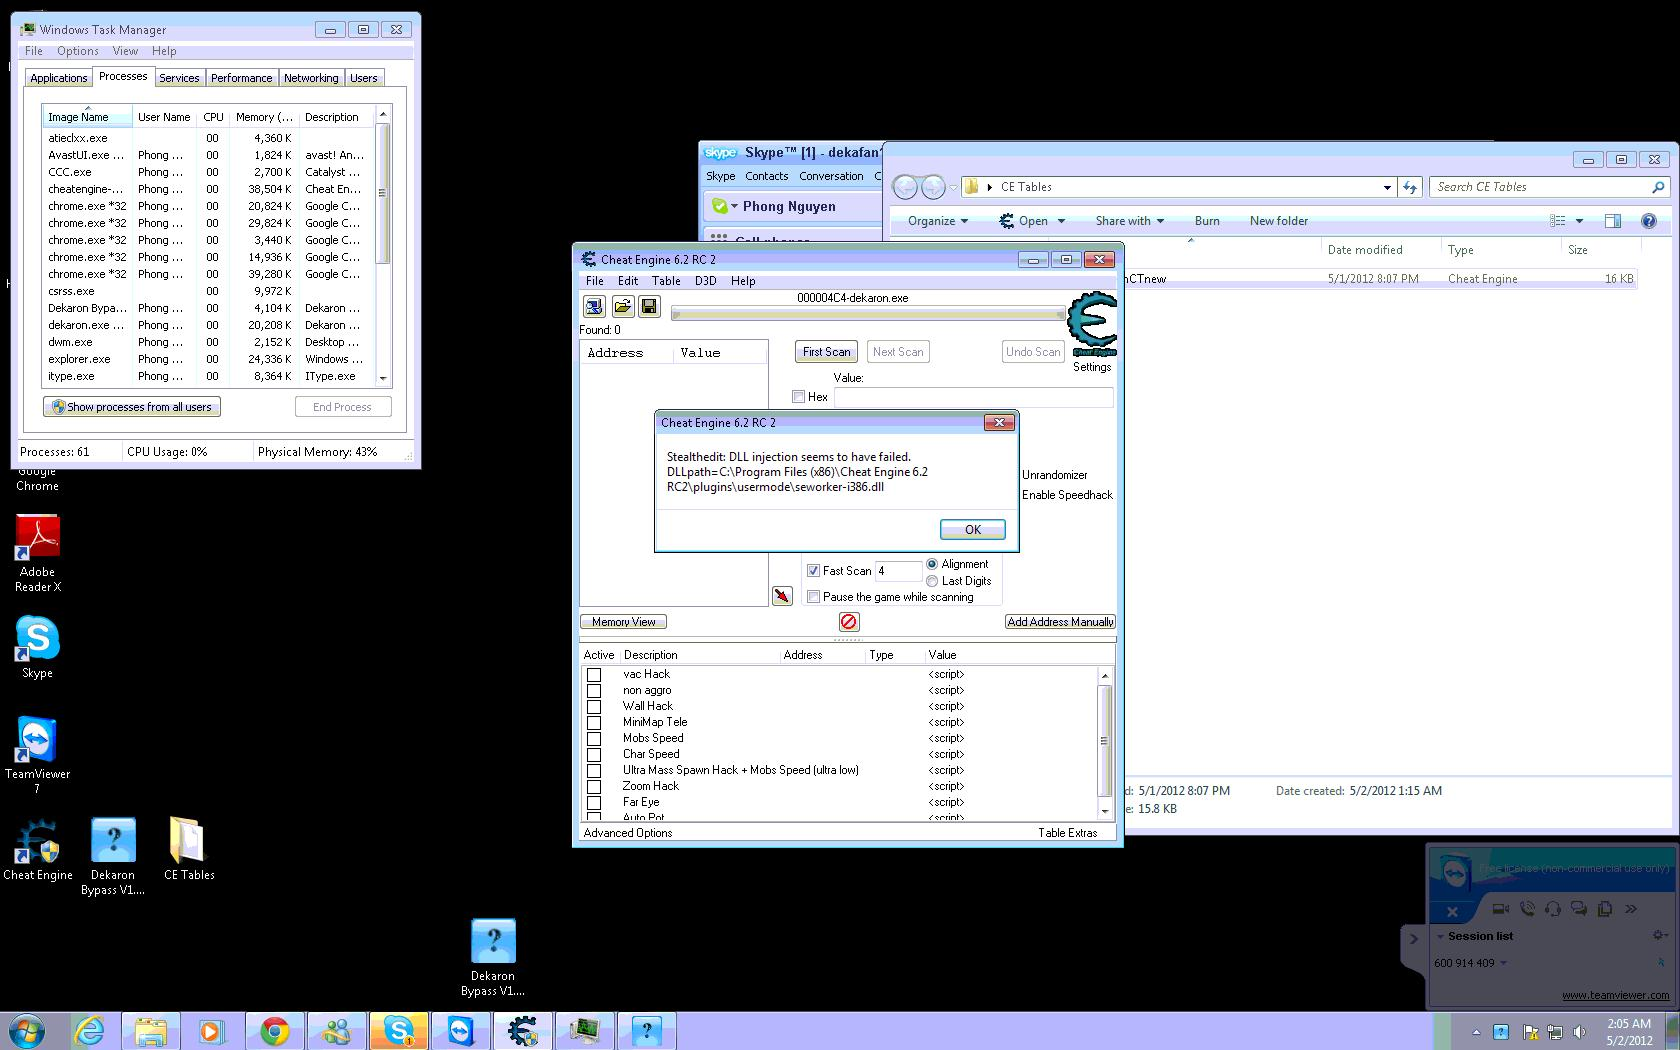 Screenshots of Cheat Engine